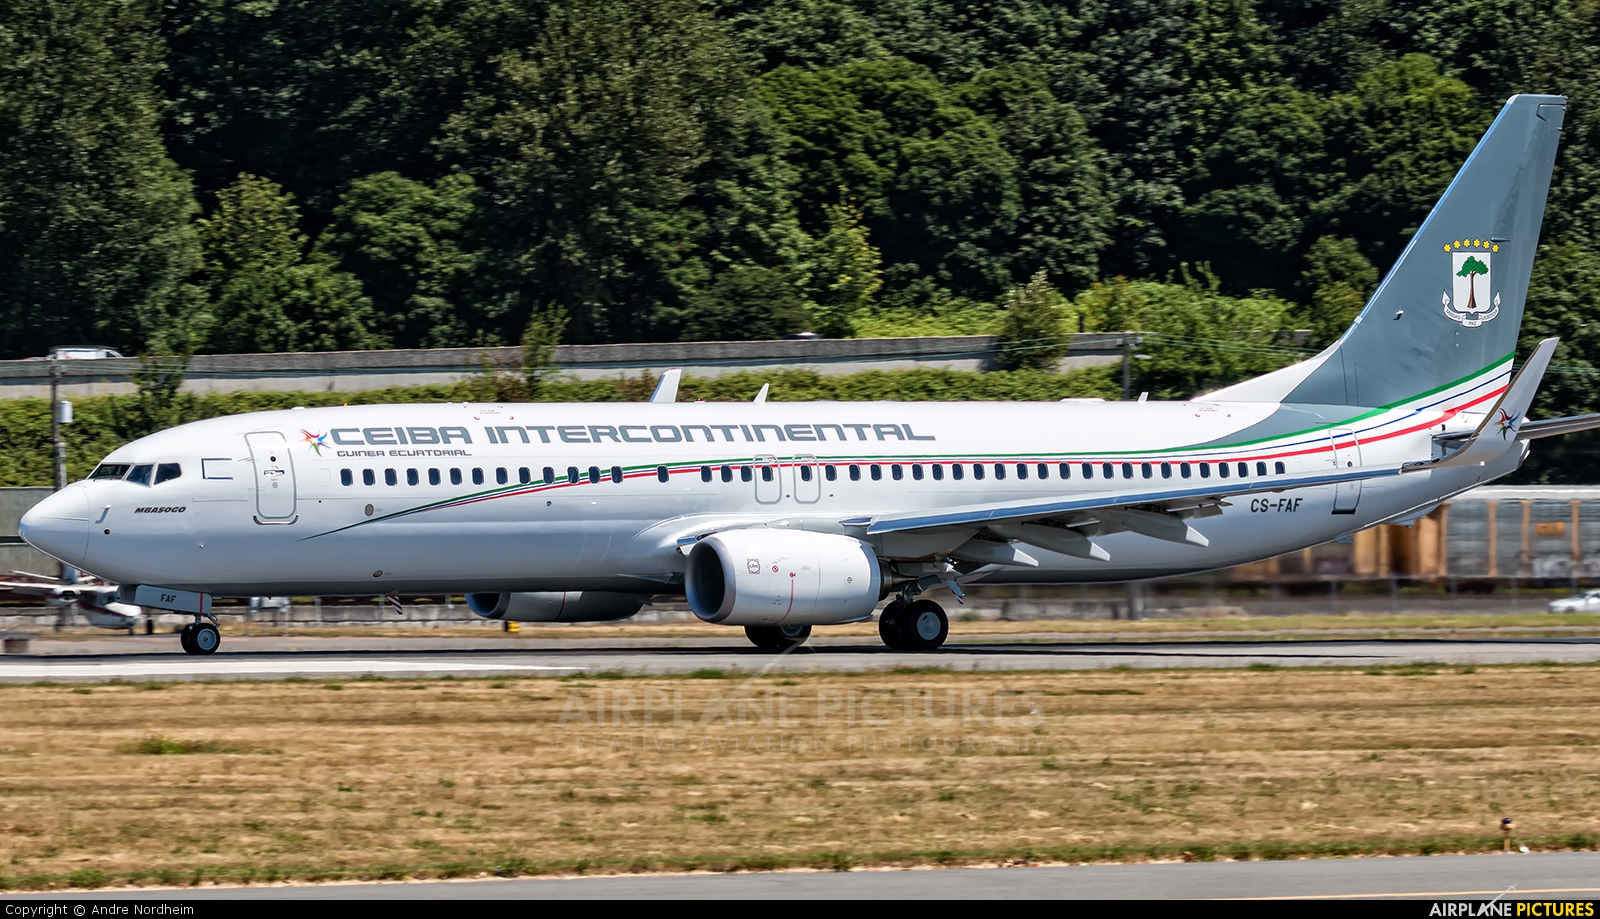 Ceiba Intercontinental CS-FAF aircraft at Seattle - Boeing Field / King County Intl